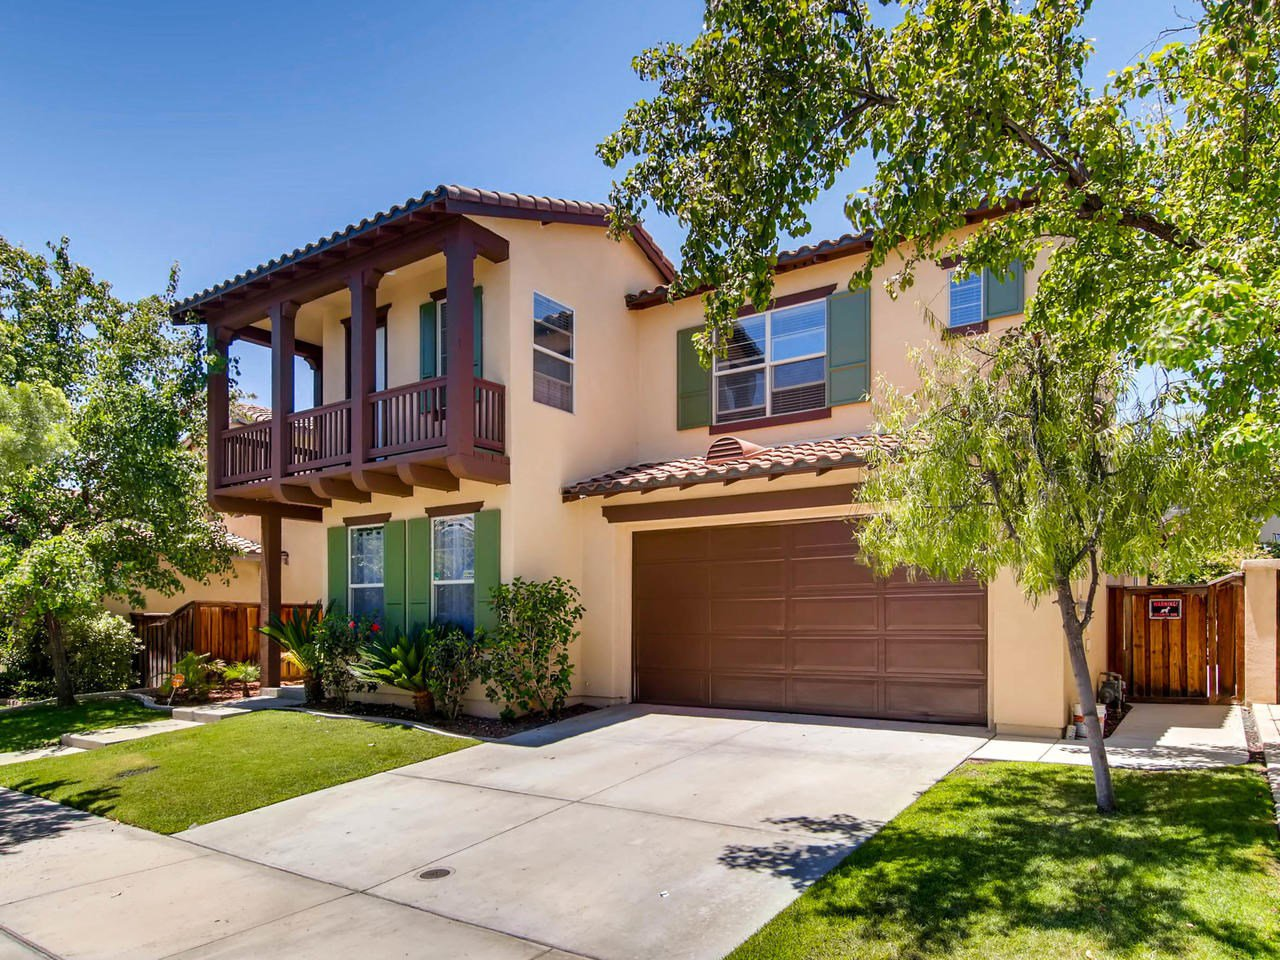 1616 Picket Fence Dr Chula Vista 91915 San Diego County